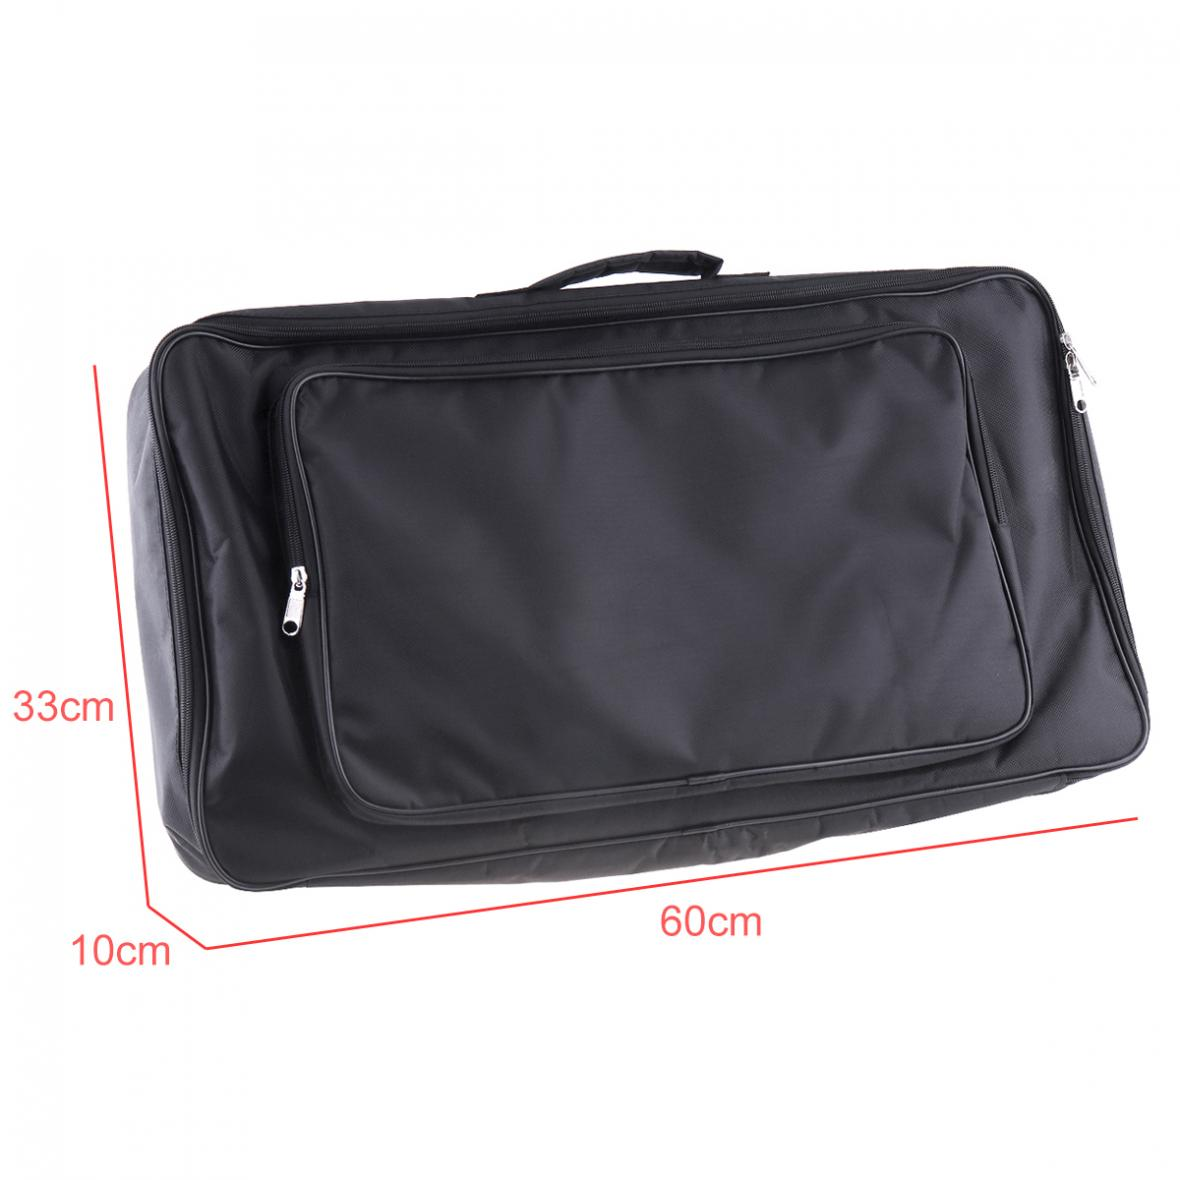 Image 5 - 60*33*10cm Black Universal Portable Guitar Effects Pedal Board Gig Bag Soft Case Big Style  DIY Guitar Pedalboard-in Guitar Parts & Accessories from Sports & Entertainment